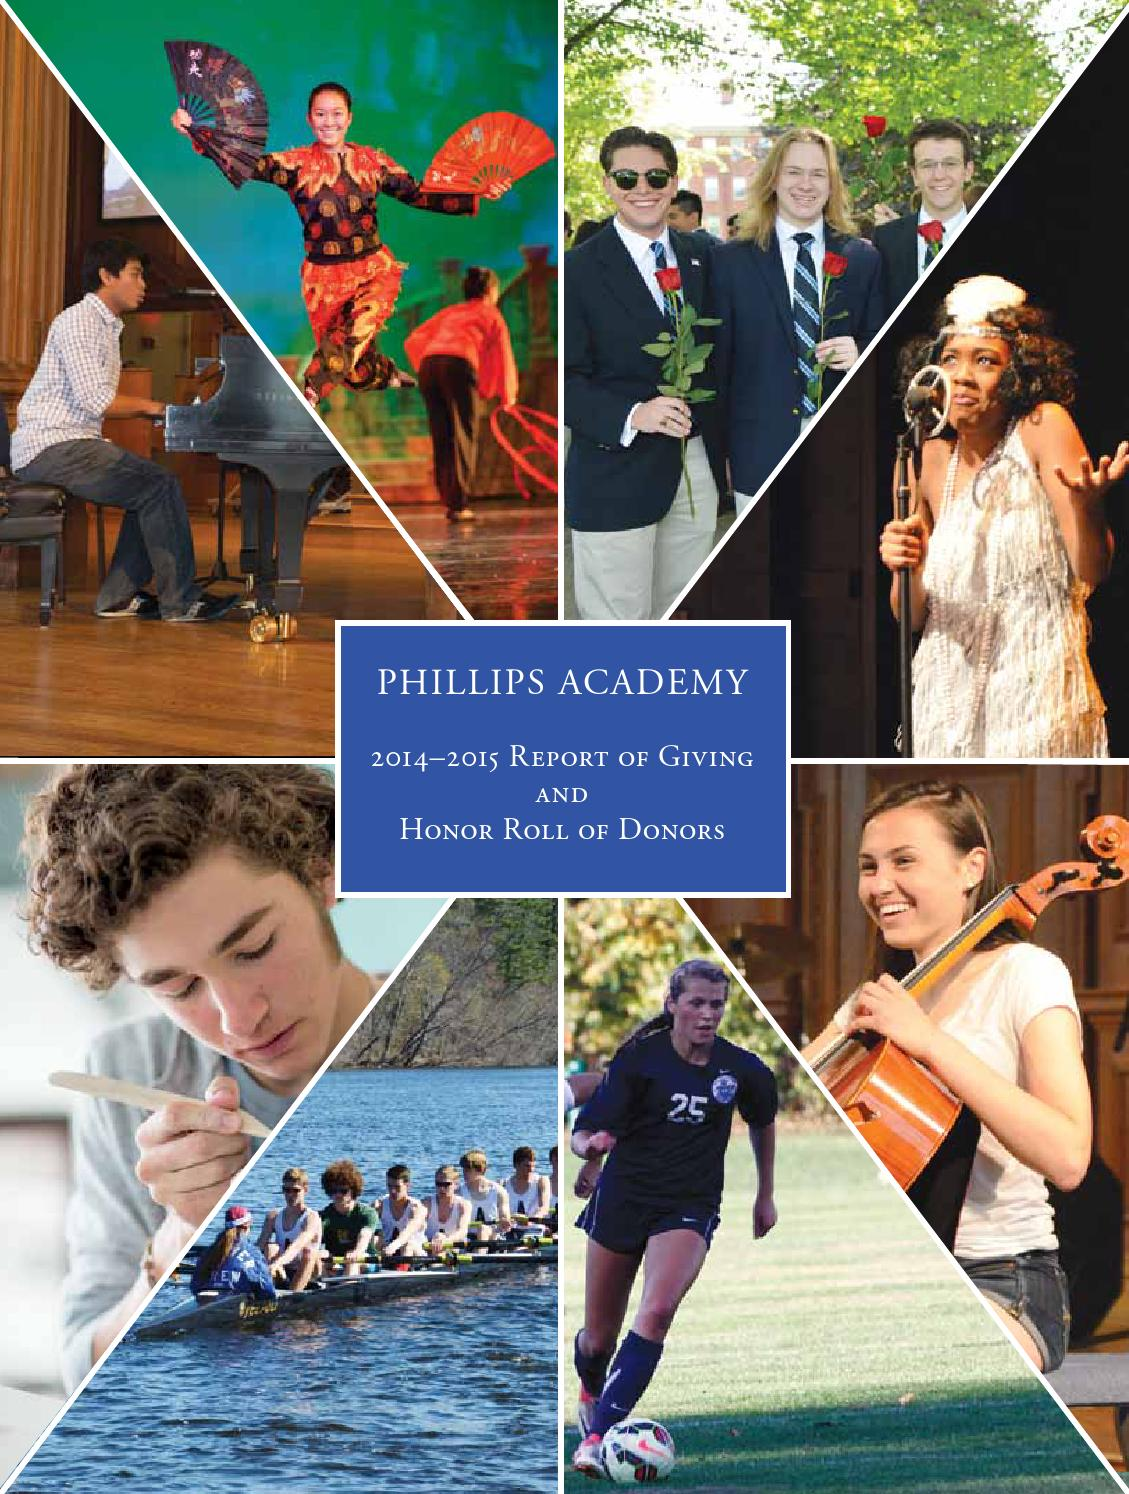 2015 Report Of Giving By Phillips Academy Issuu